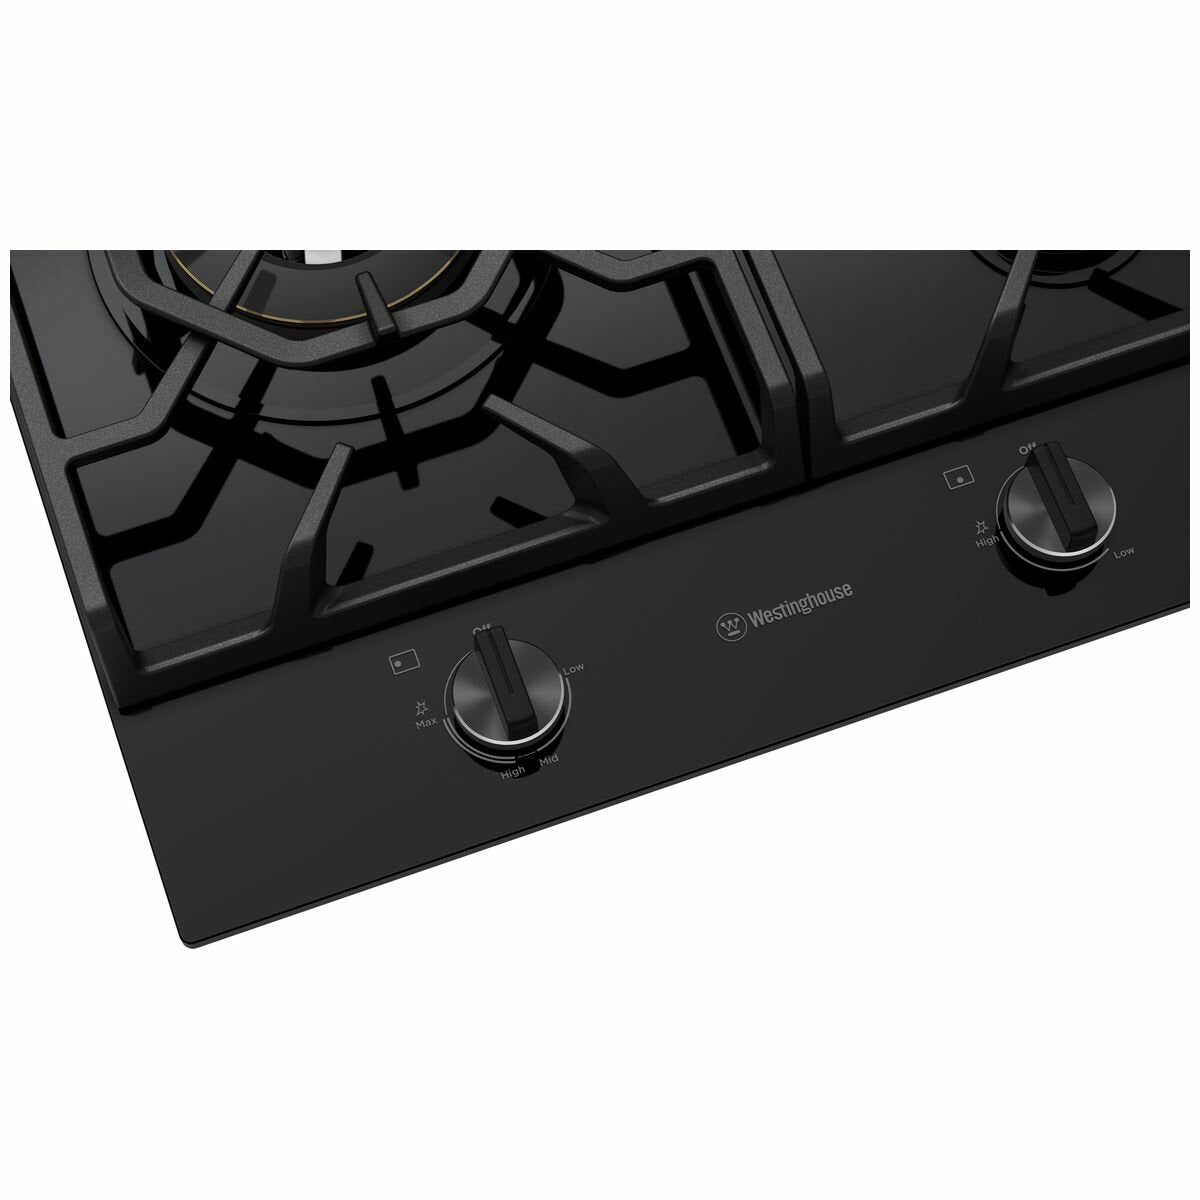 Westinghouse 90cm 5 Burner Natural Gas Cooktop - Brisbane Home Appliances